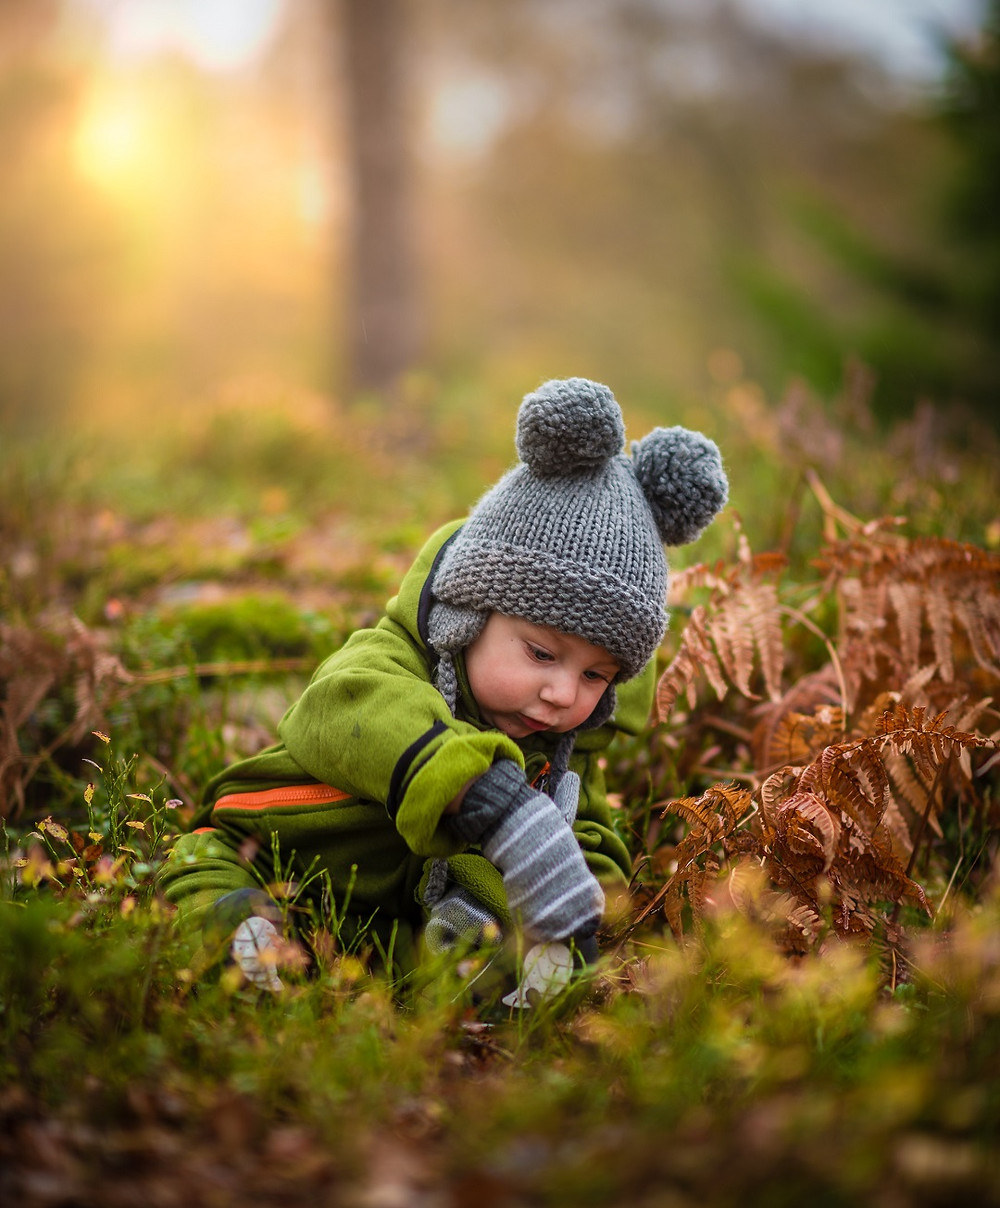 Toddler playing in nature